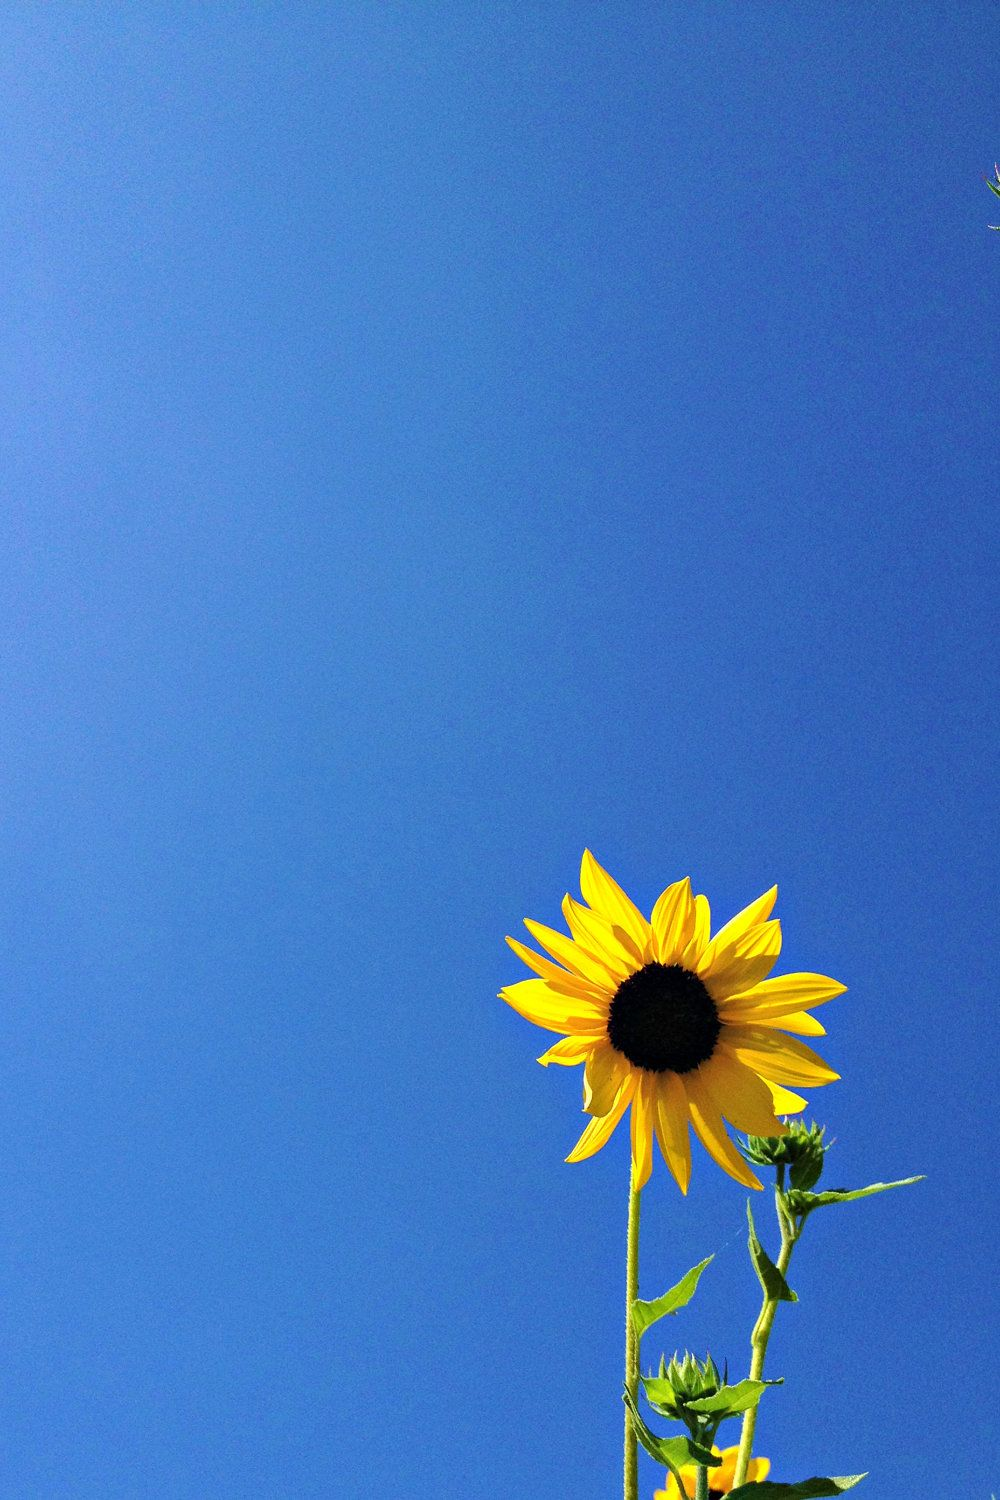 Royal Blue Art Minimalist Nature Photography Yellow Flower Photography Sunflower Art Print